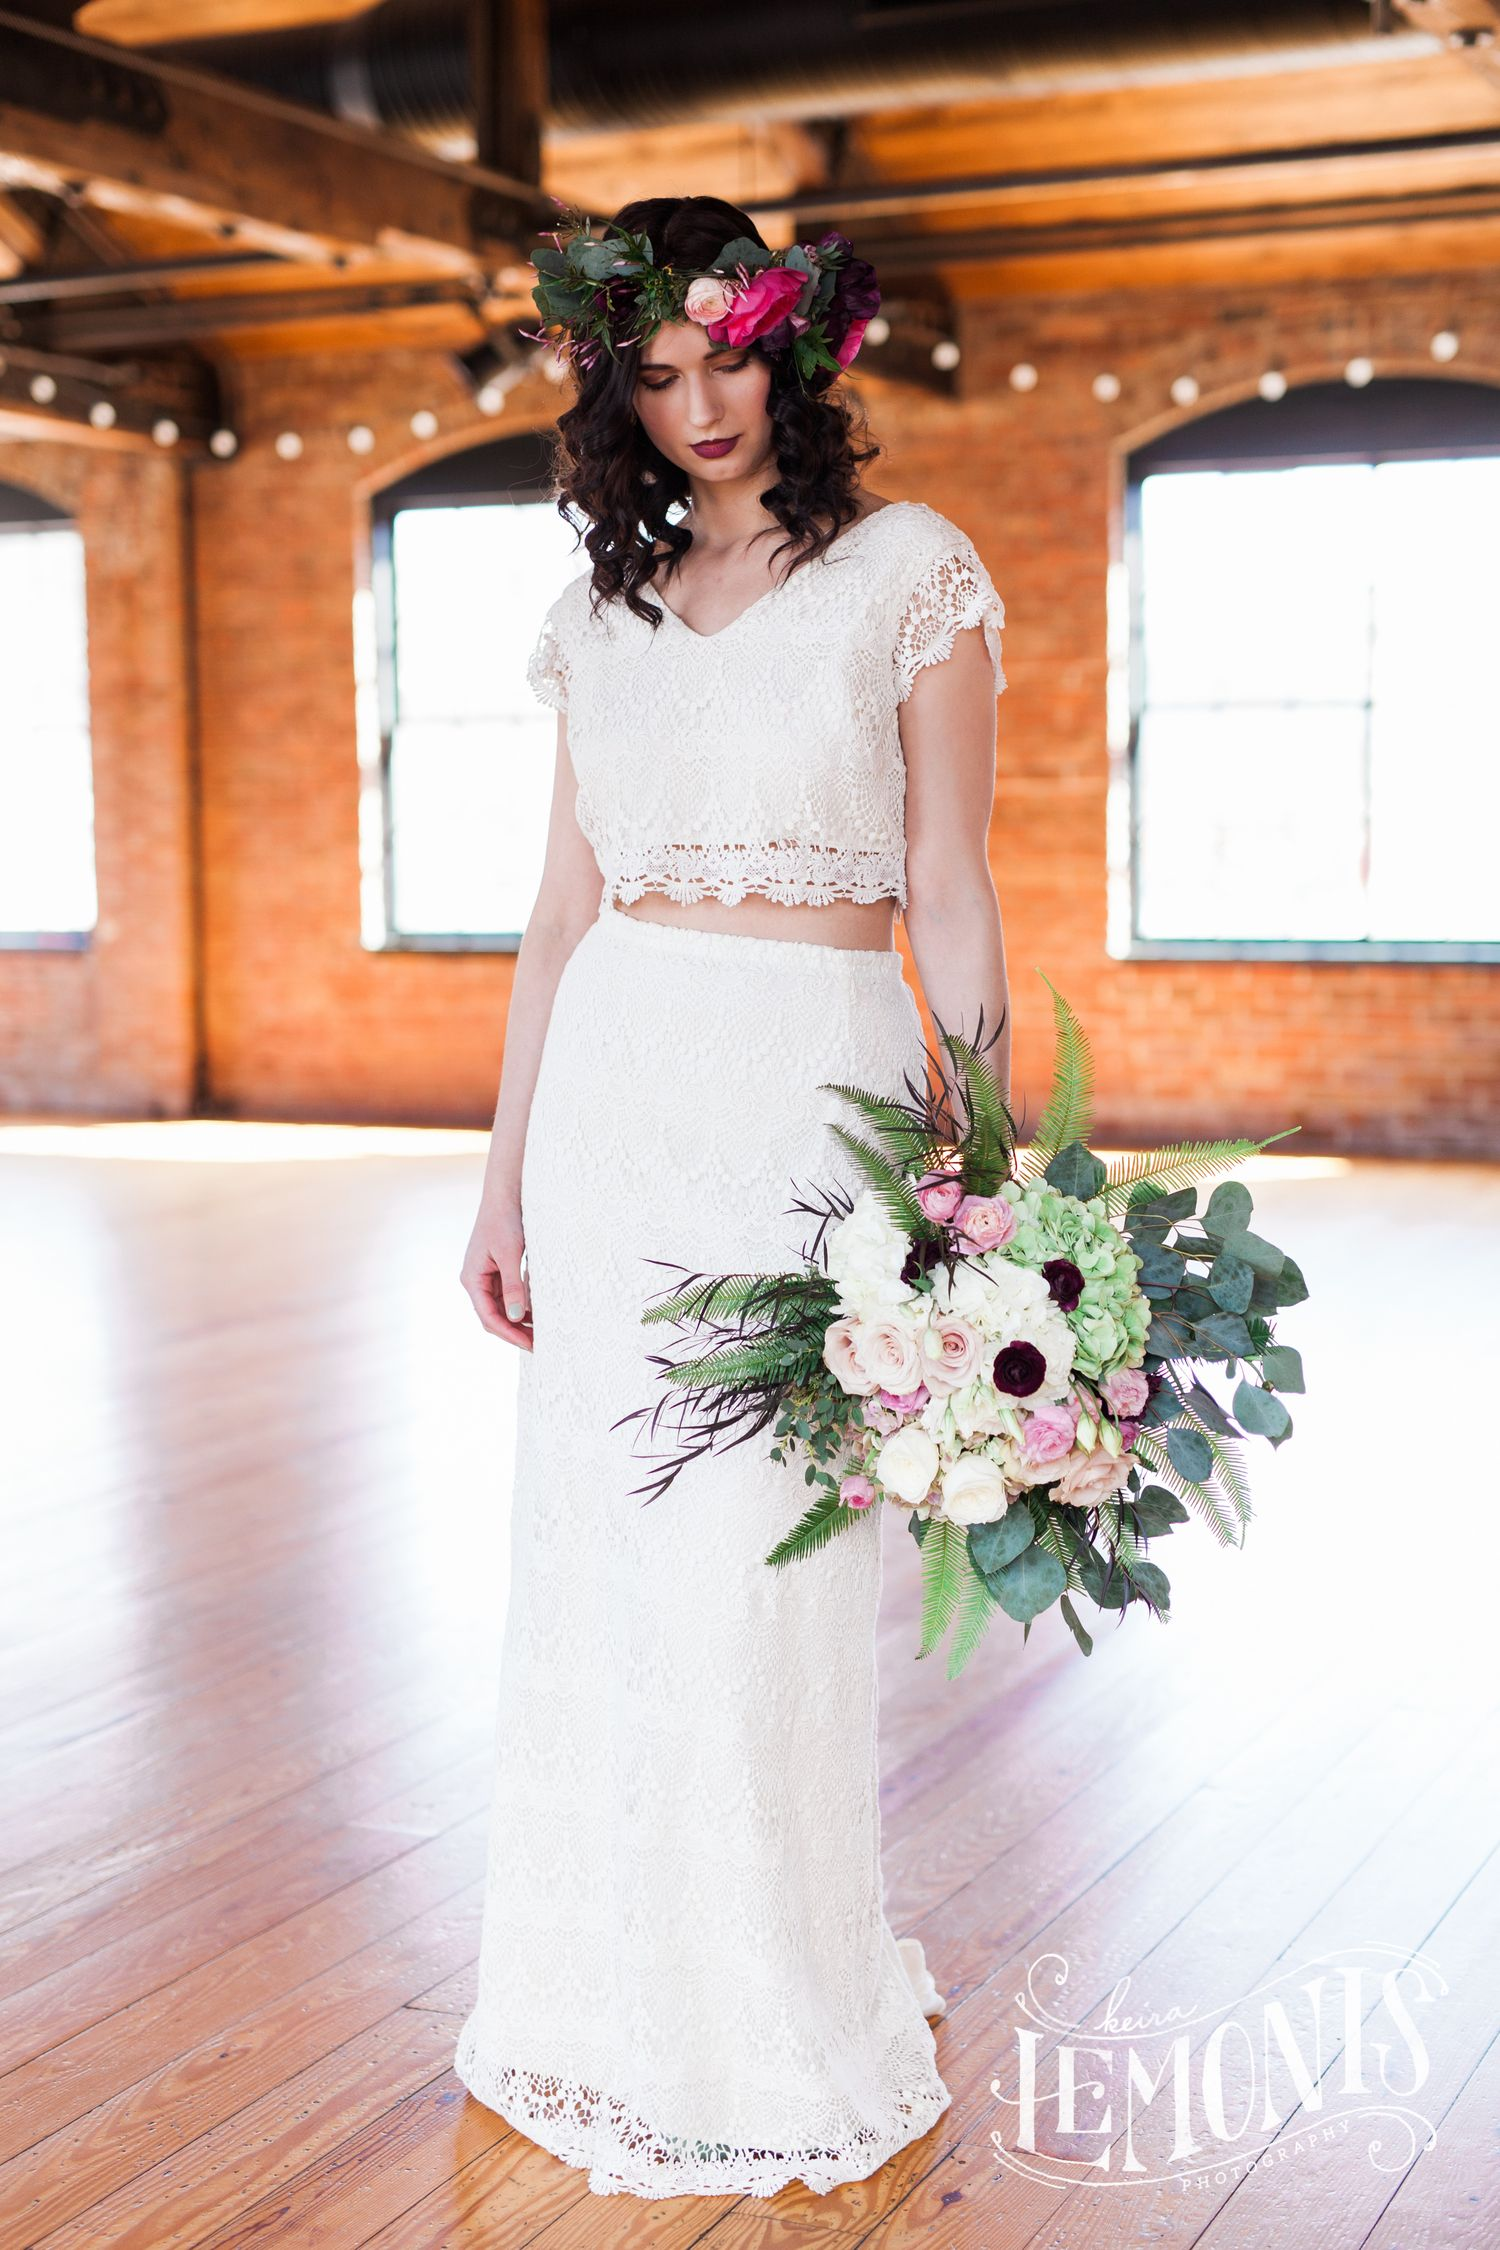 Bridal style inspiration shoot with true north bridal crop top two